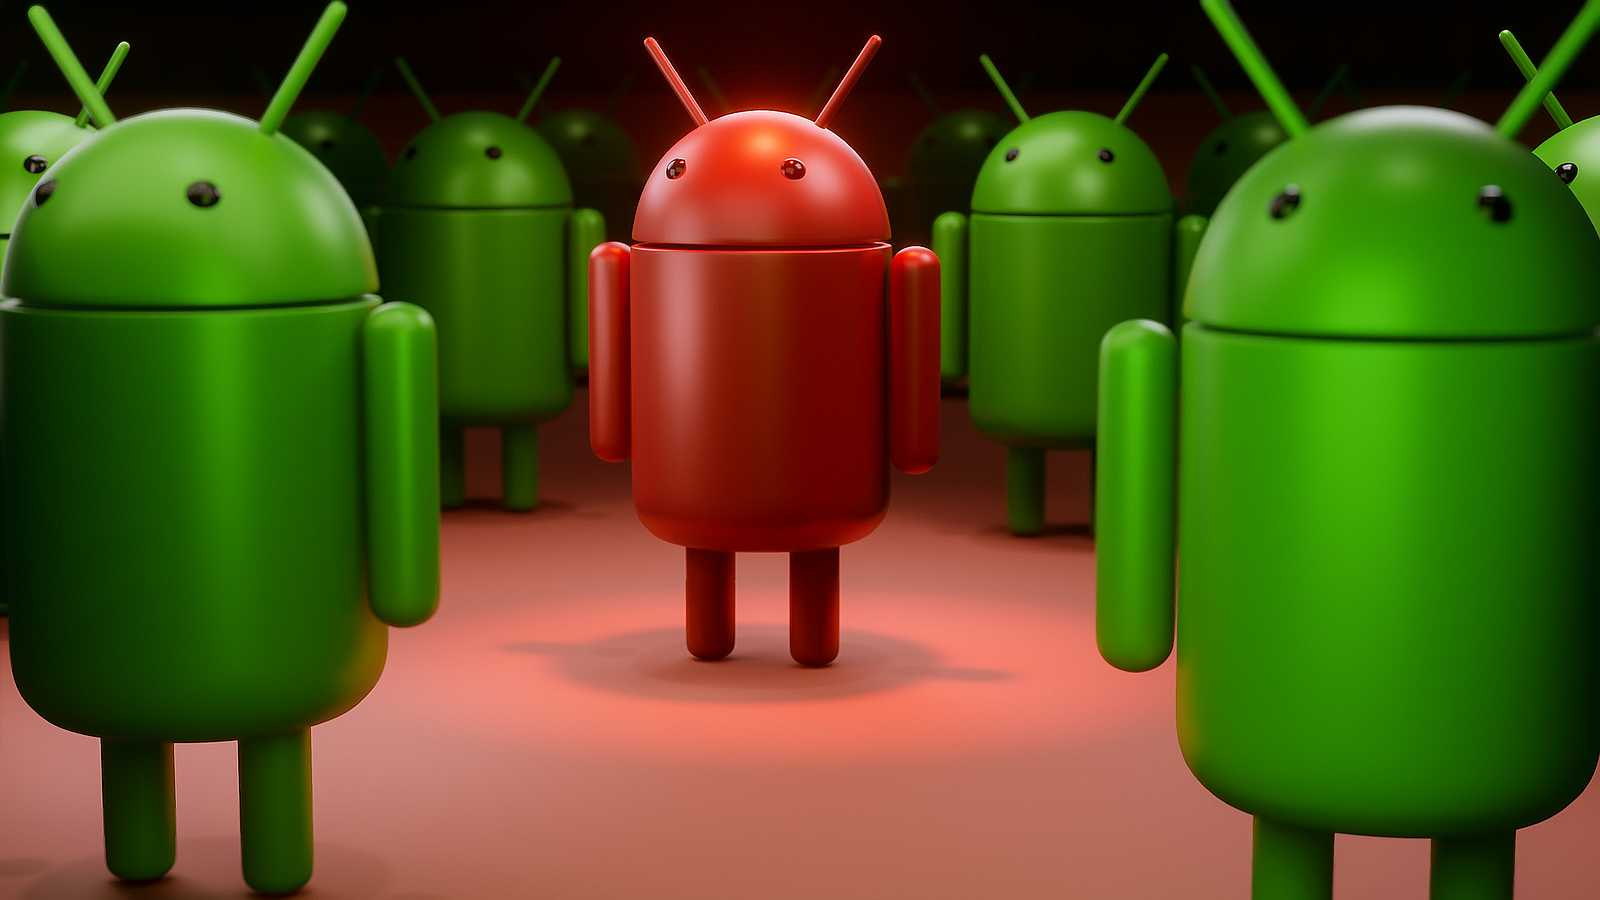 android mascot in red with a virus